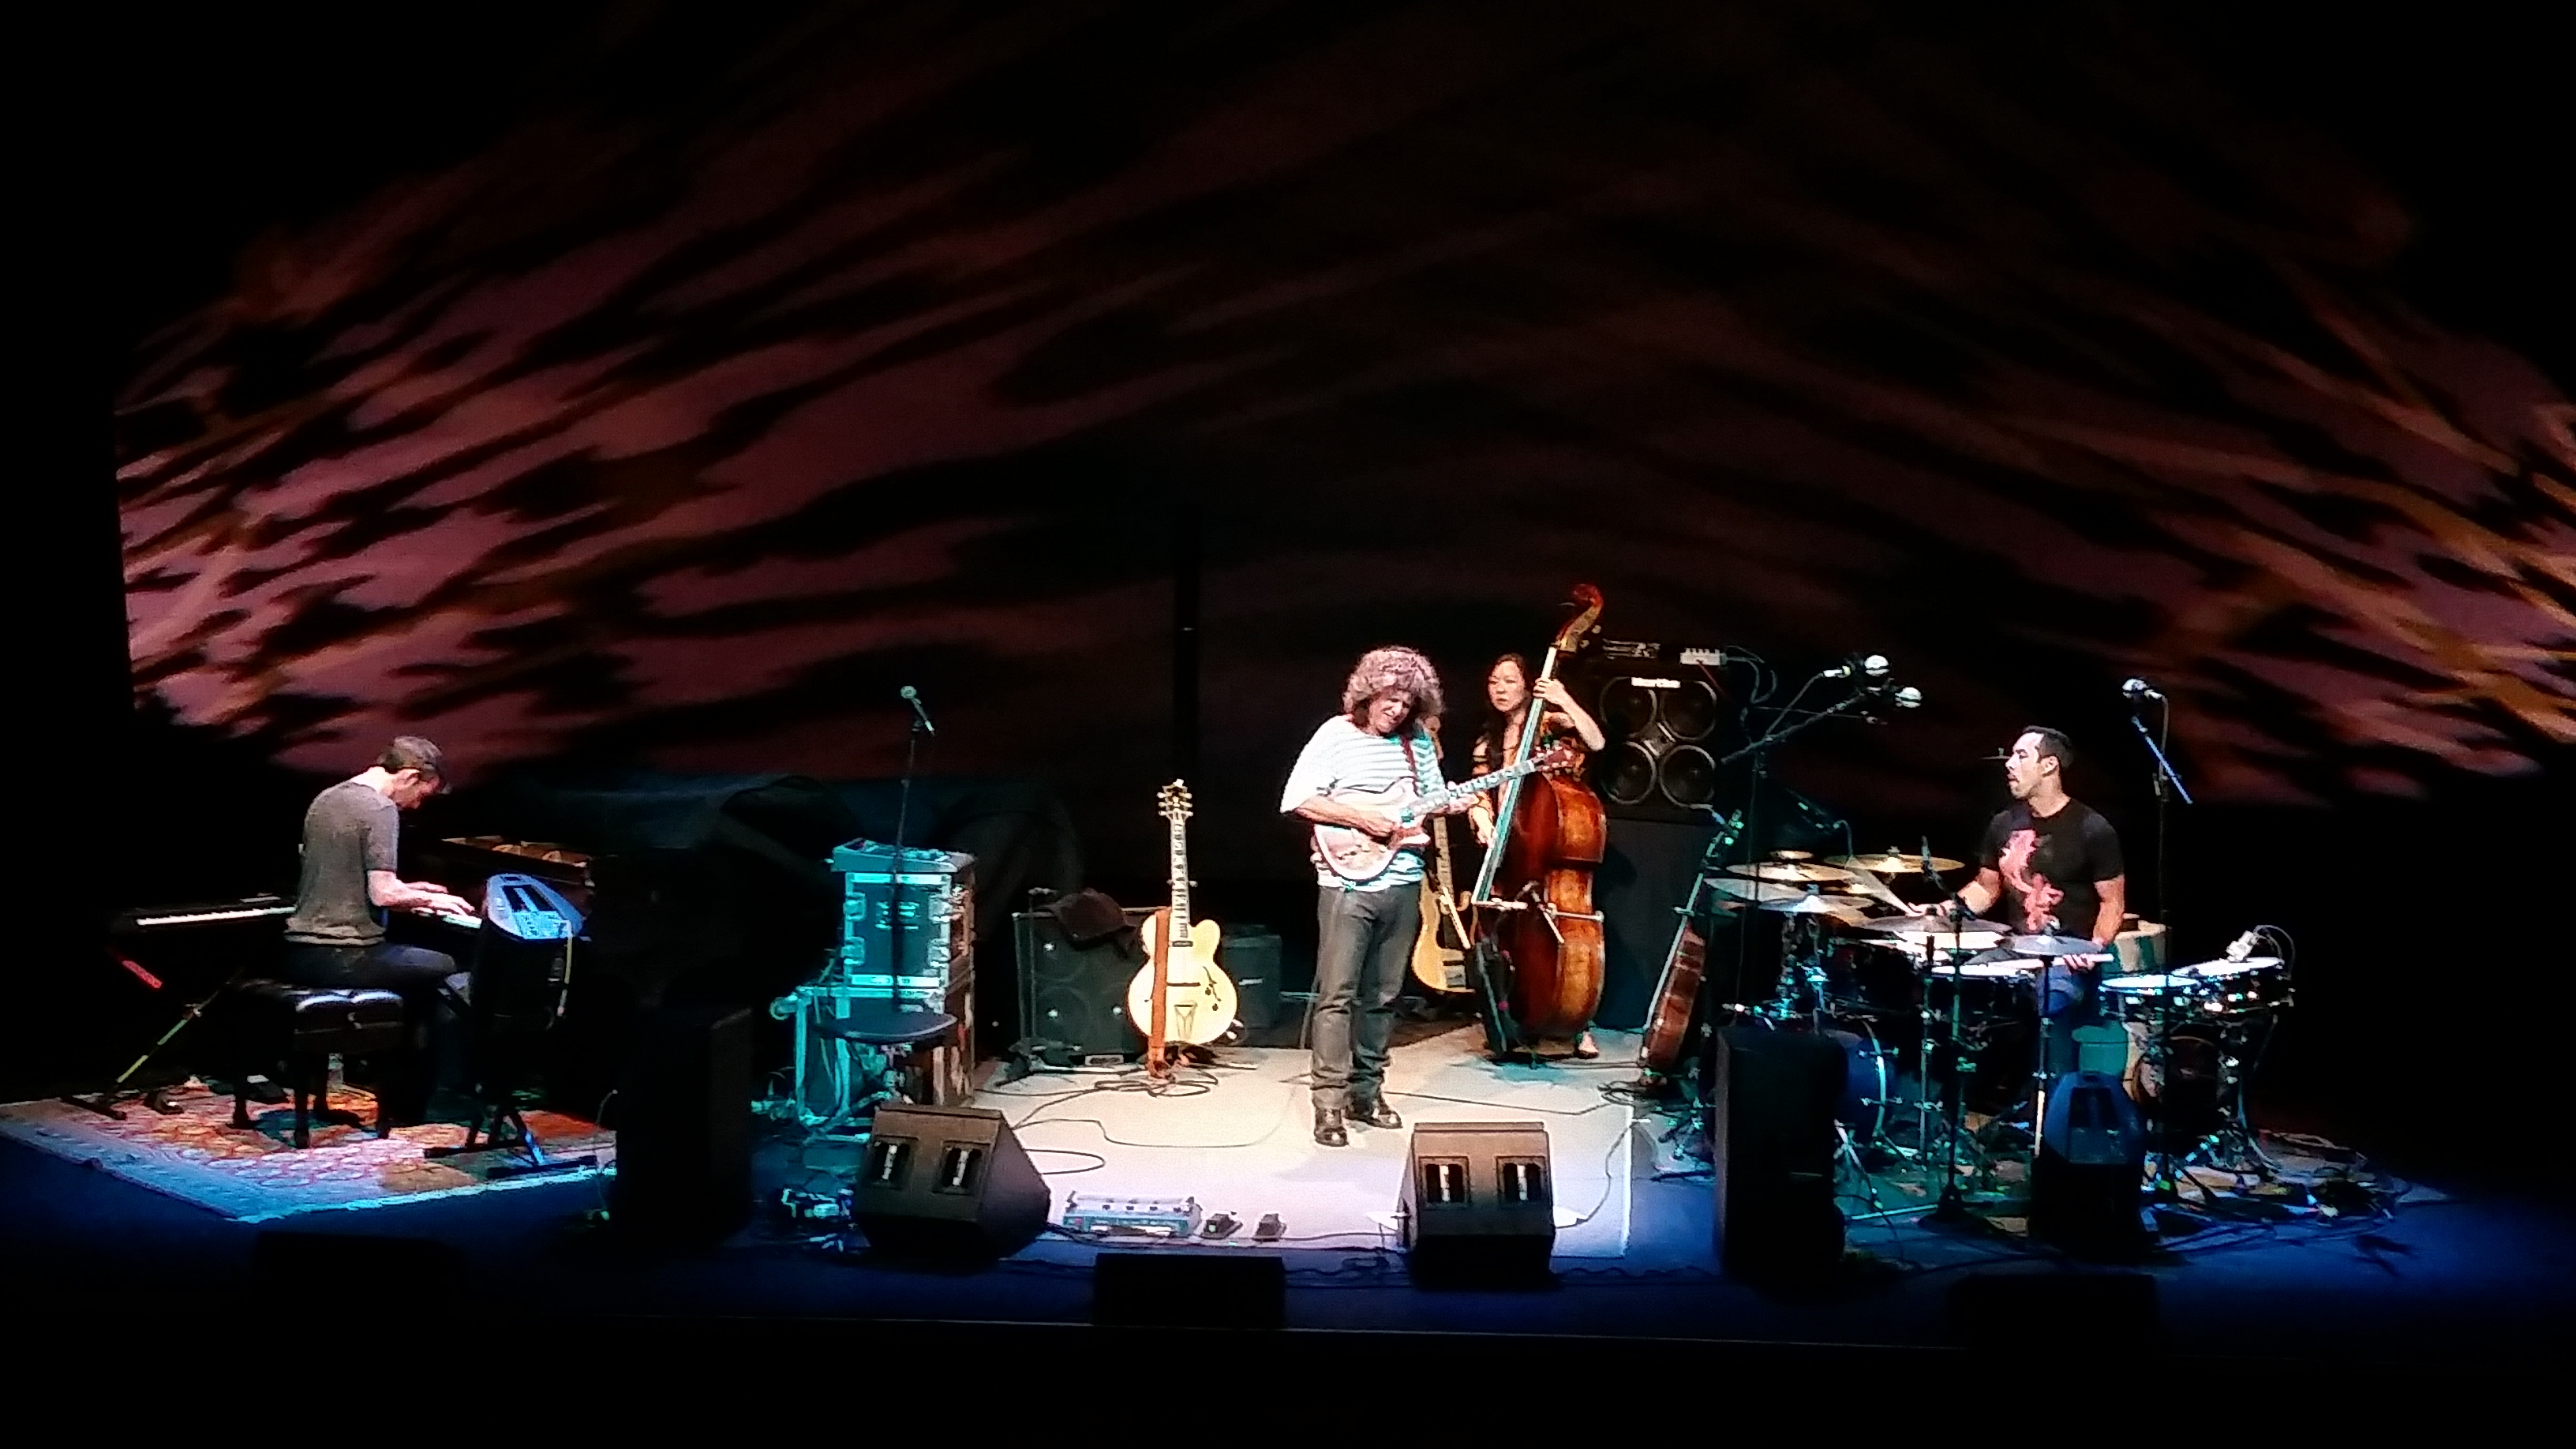 PatMetheny2016-09-16VirginiaPiperTheaterScottsdaleAZ (16).jpg